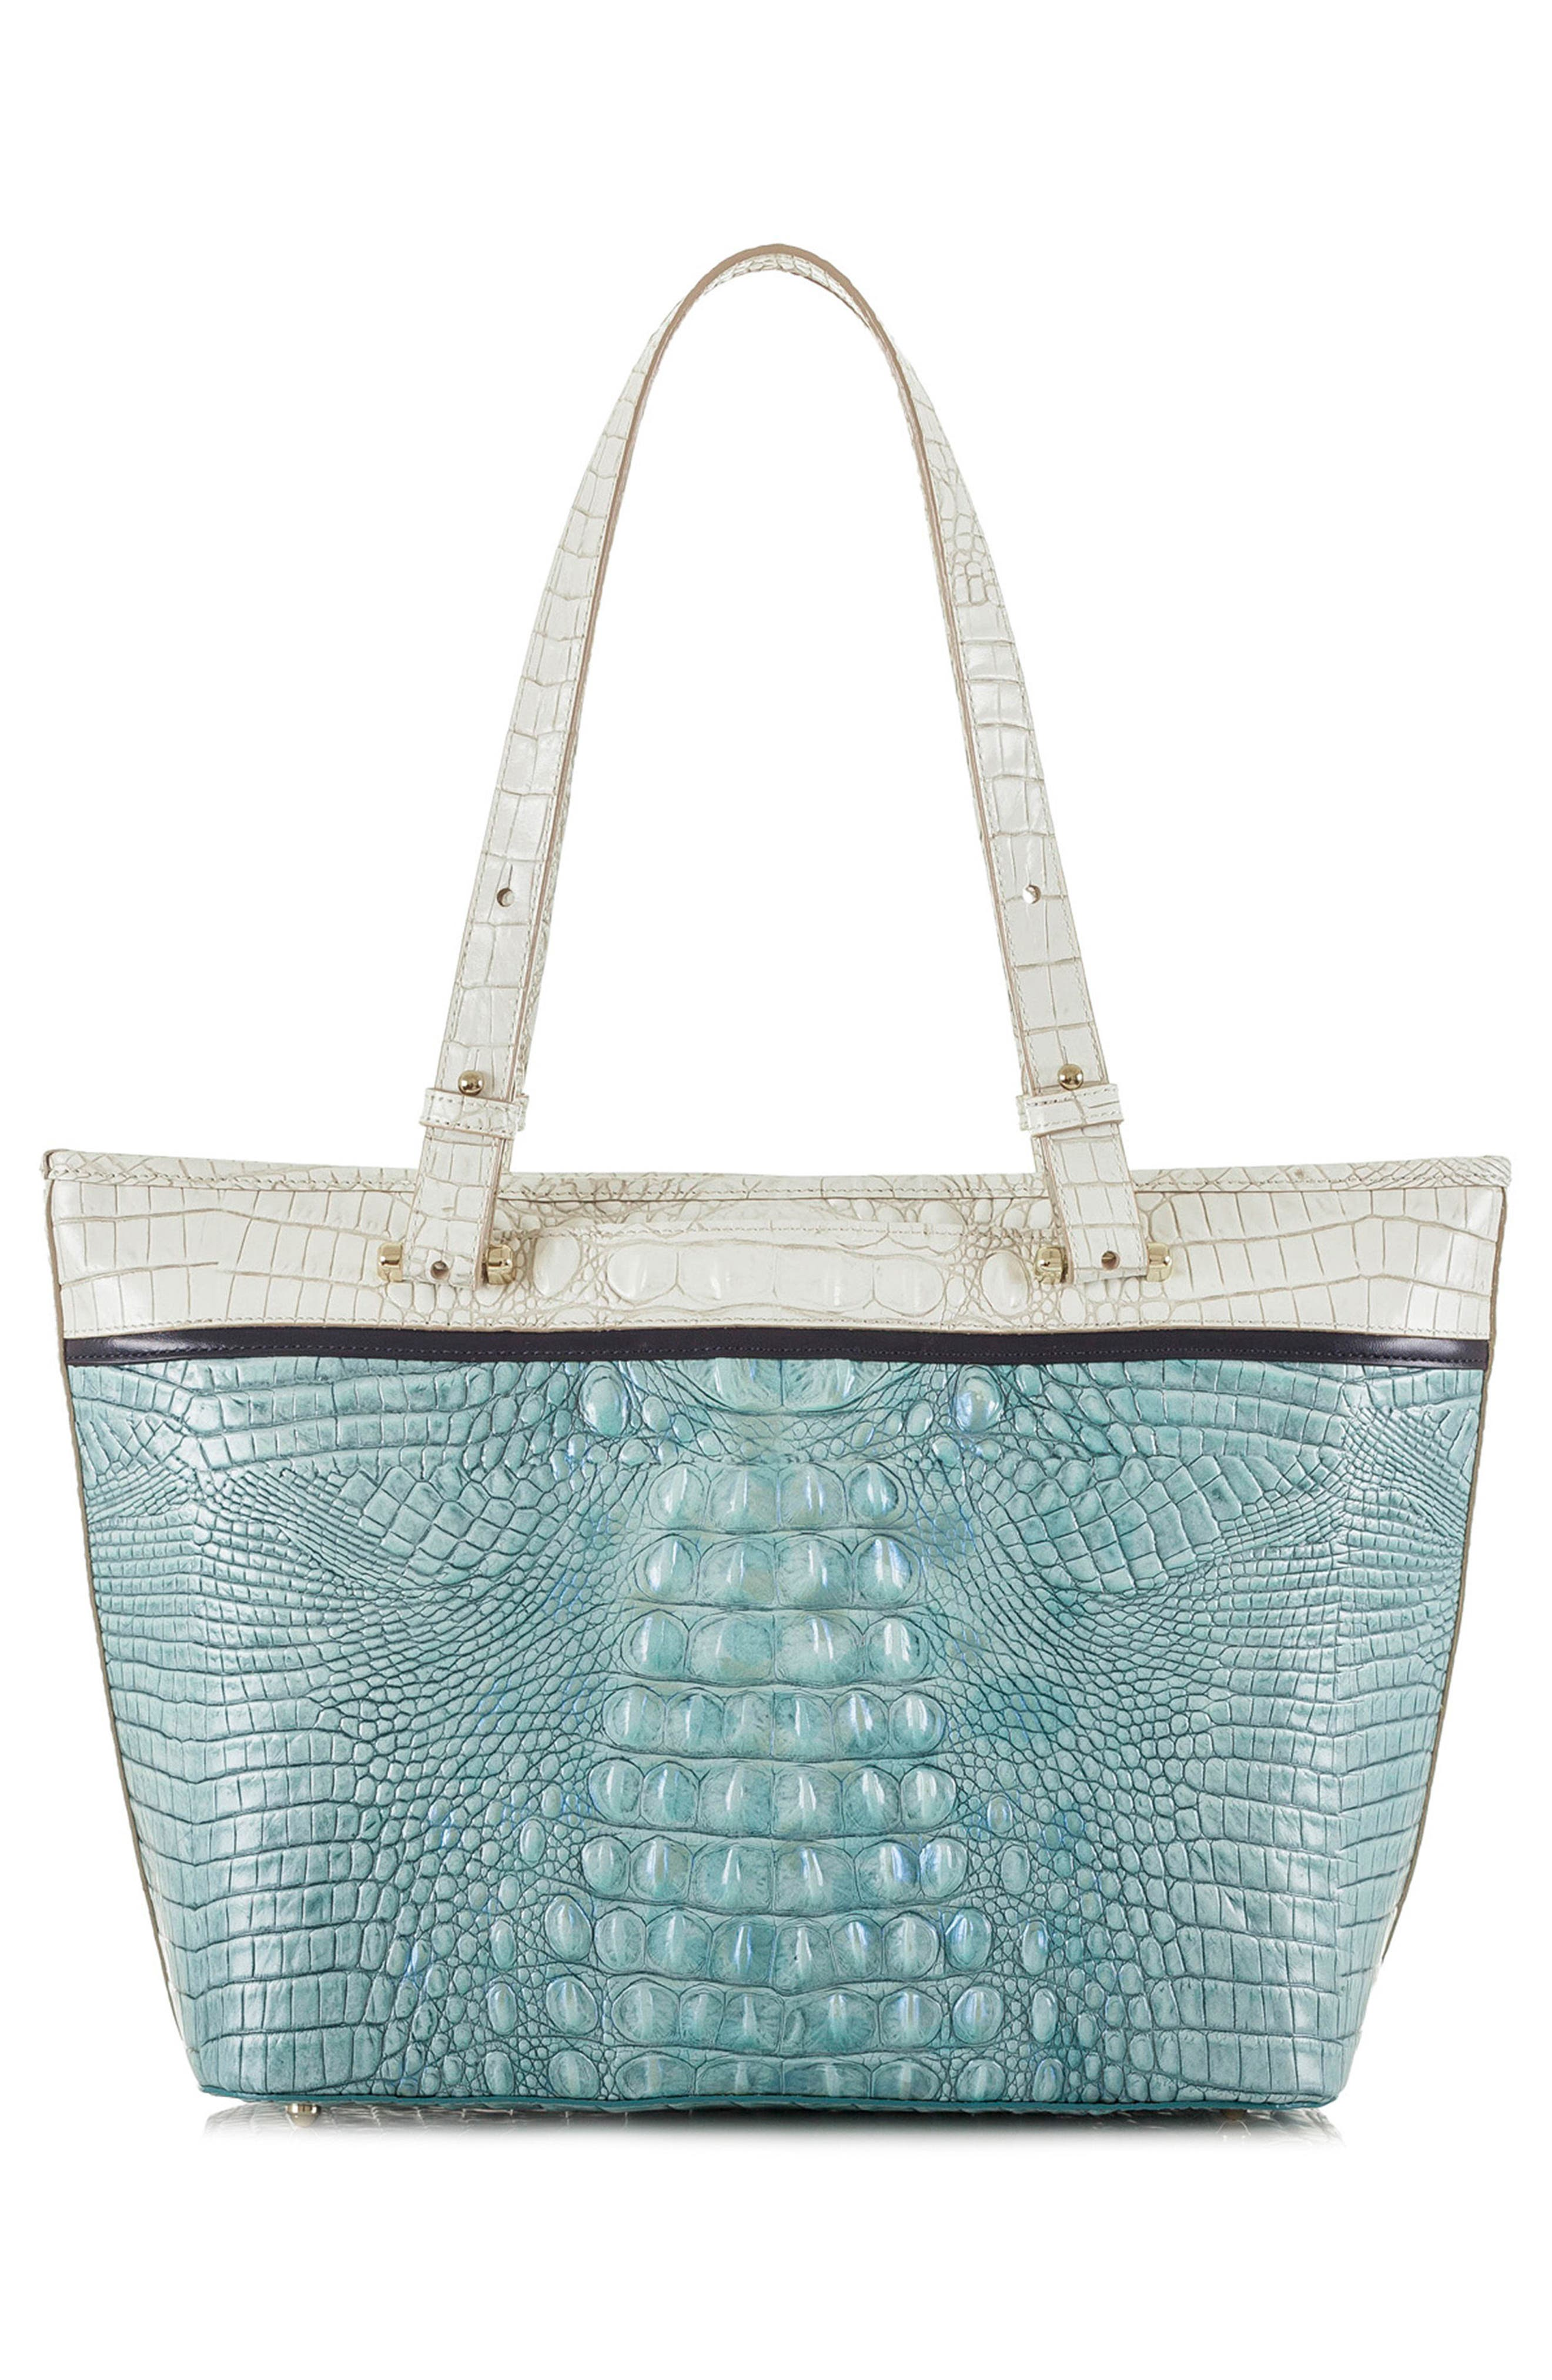 Medium Asher Embossed Leather Tote,                             Alternate thumbnail 2, color,                             Astral